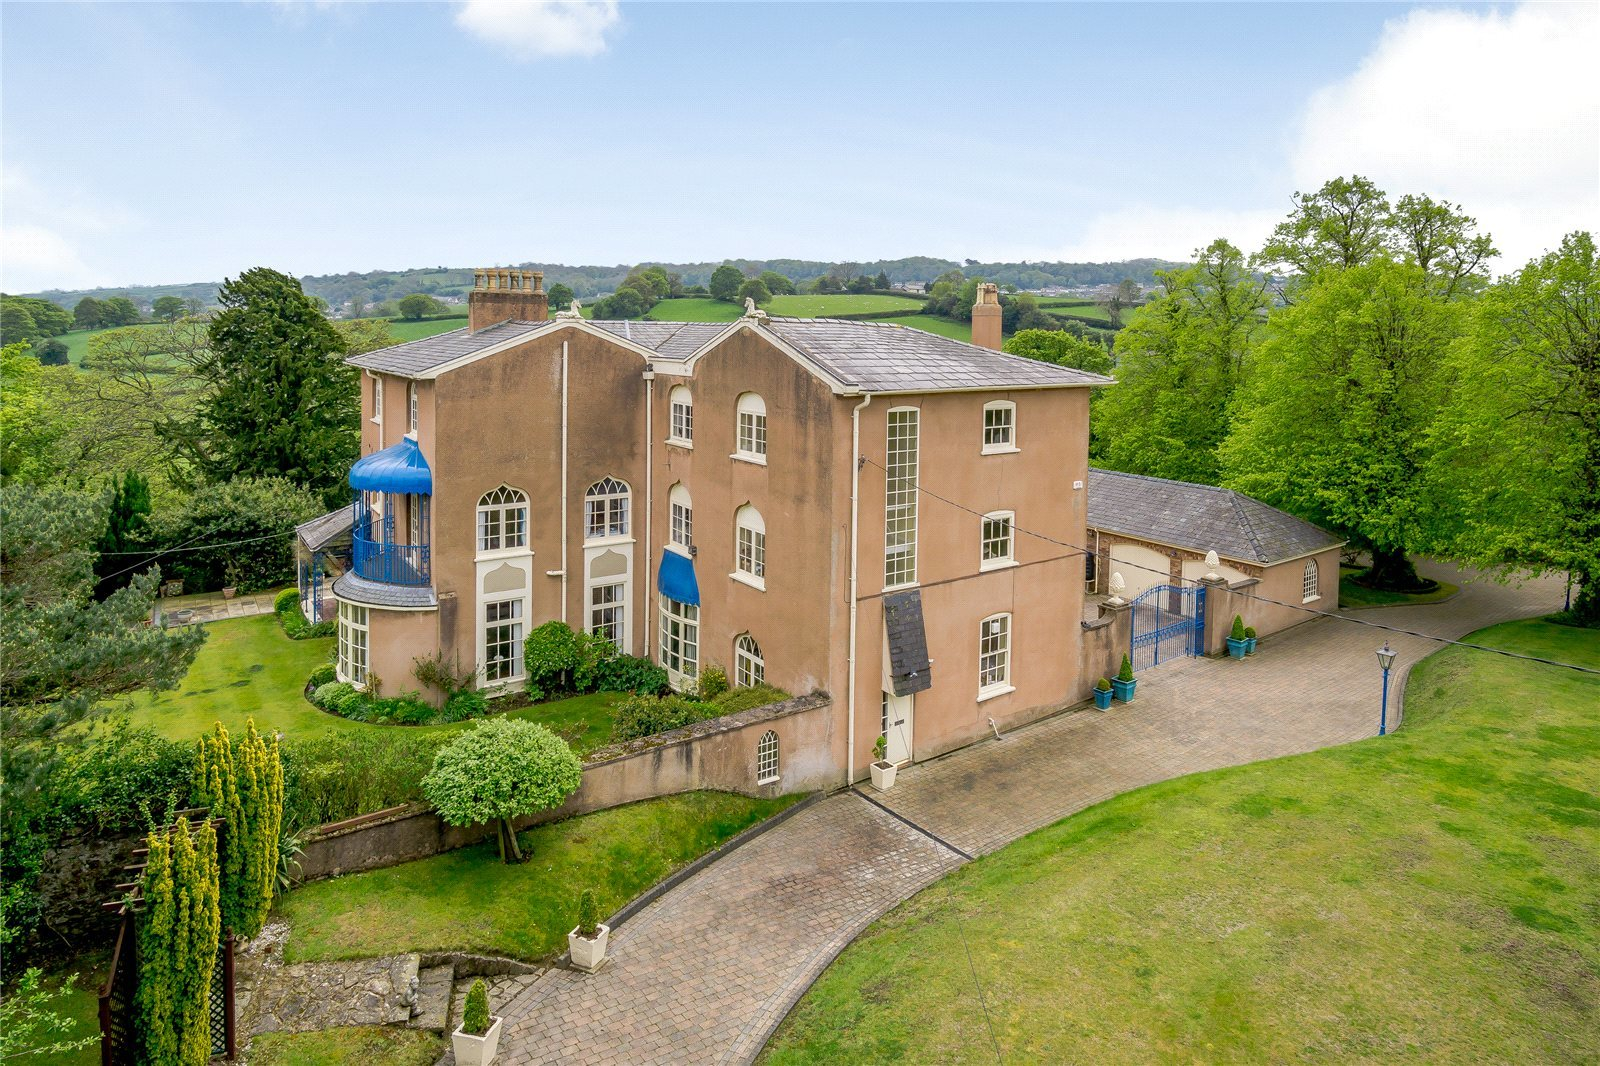 Inside Holywell manor home on the market for almost £3m